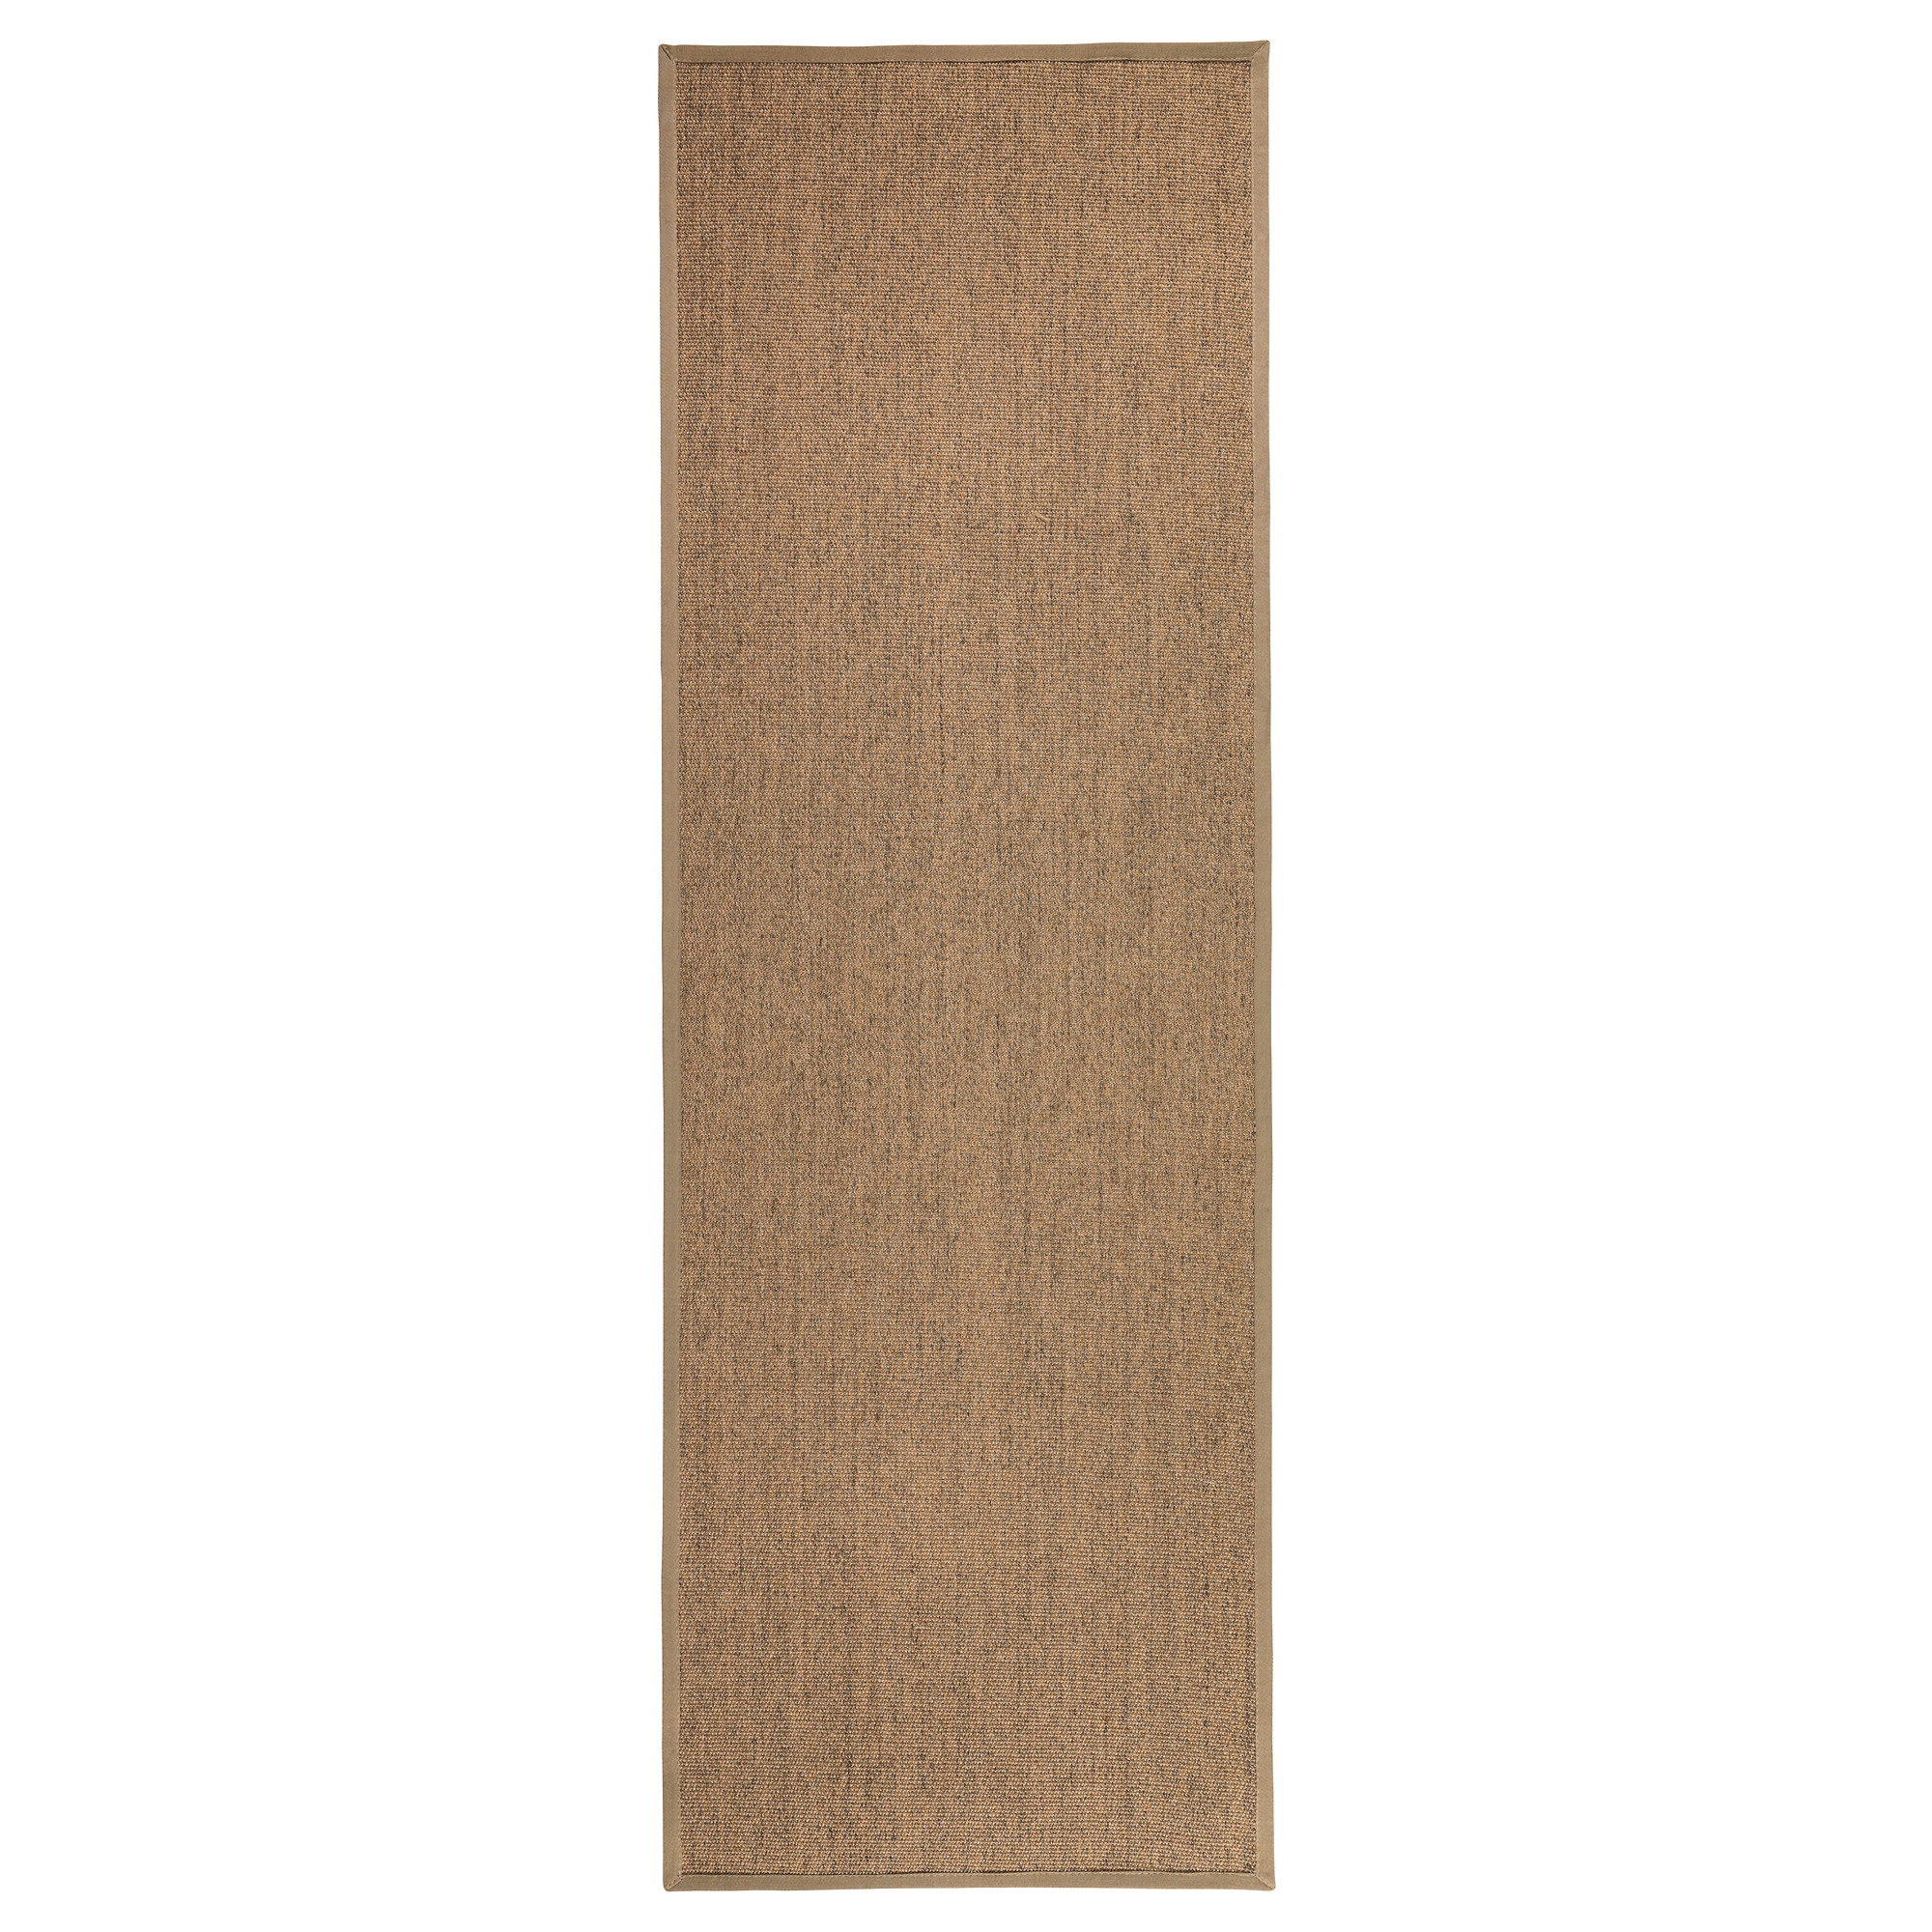 Flooring Stunning Sisal Rug Ikea For Cozy Your Home Flooring In Green  Carpet Runners Hallway (